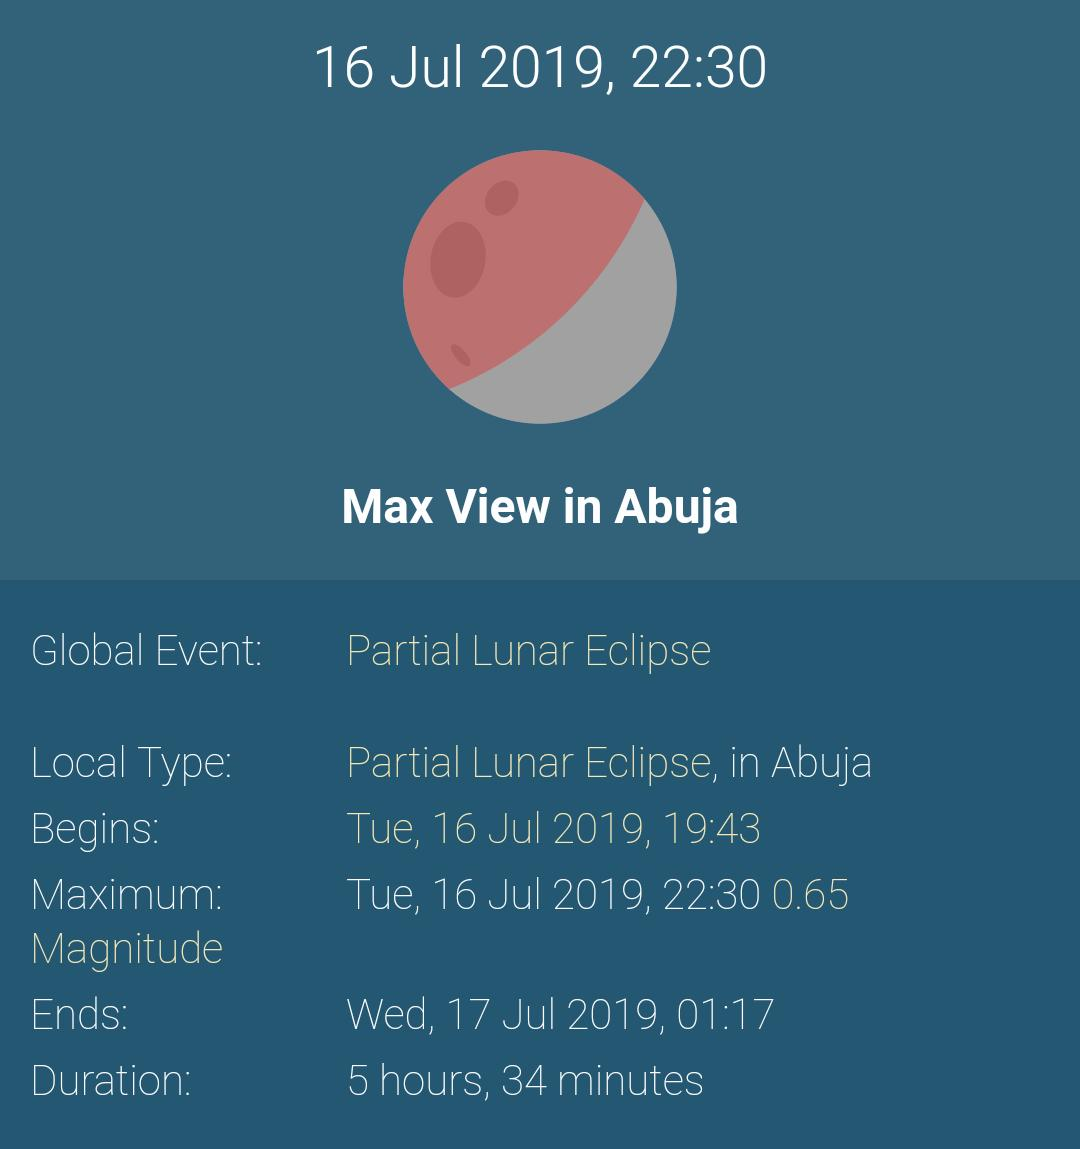 #LunarEclipse2019 As seen from #Abuja...  #LunarEclipse #CanIDM #Twitter<br>http://pic.twitter.com/KVs13mYX63